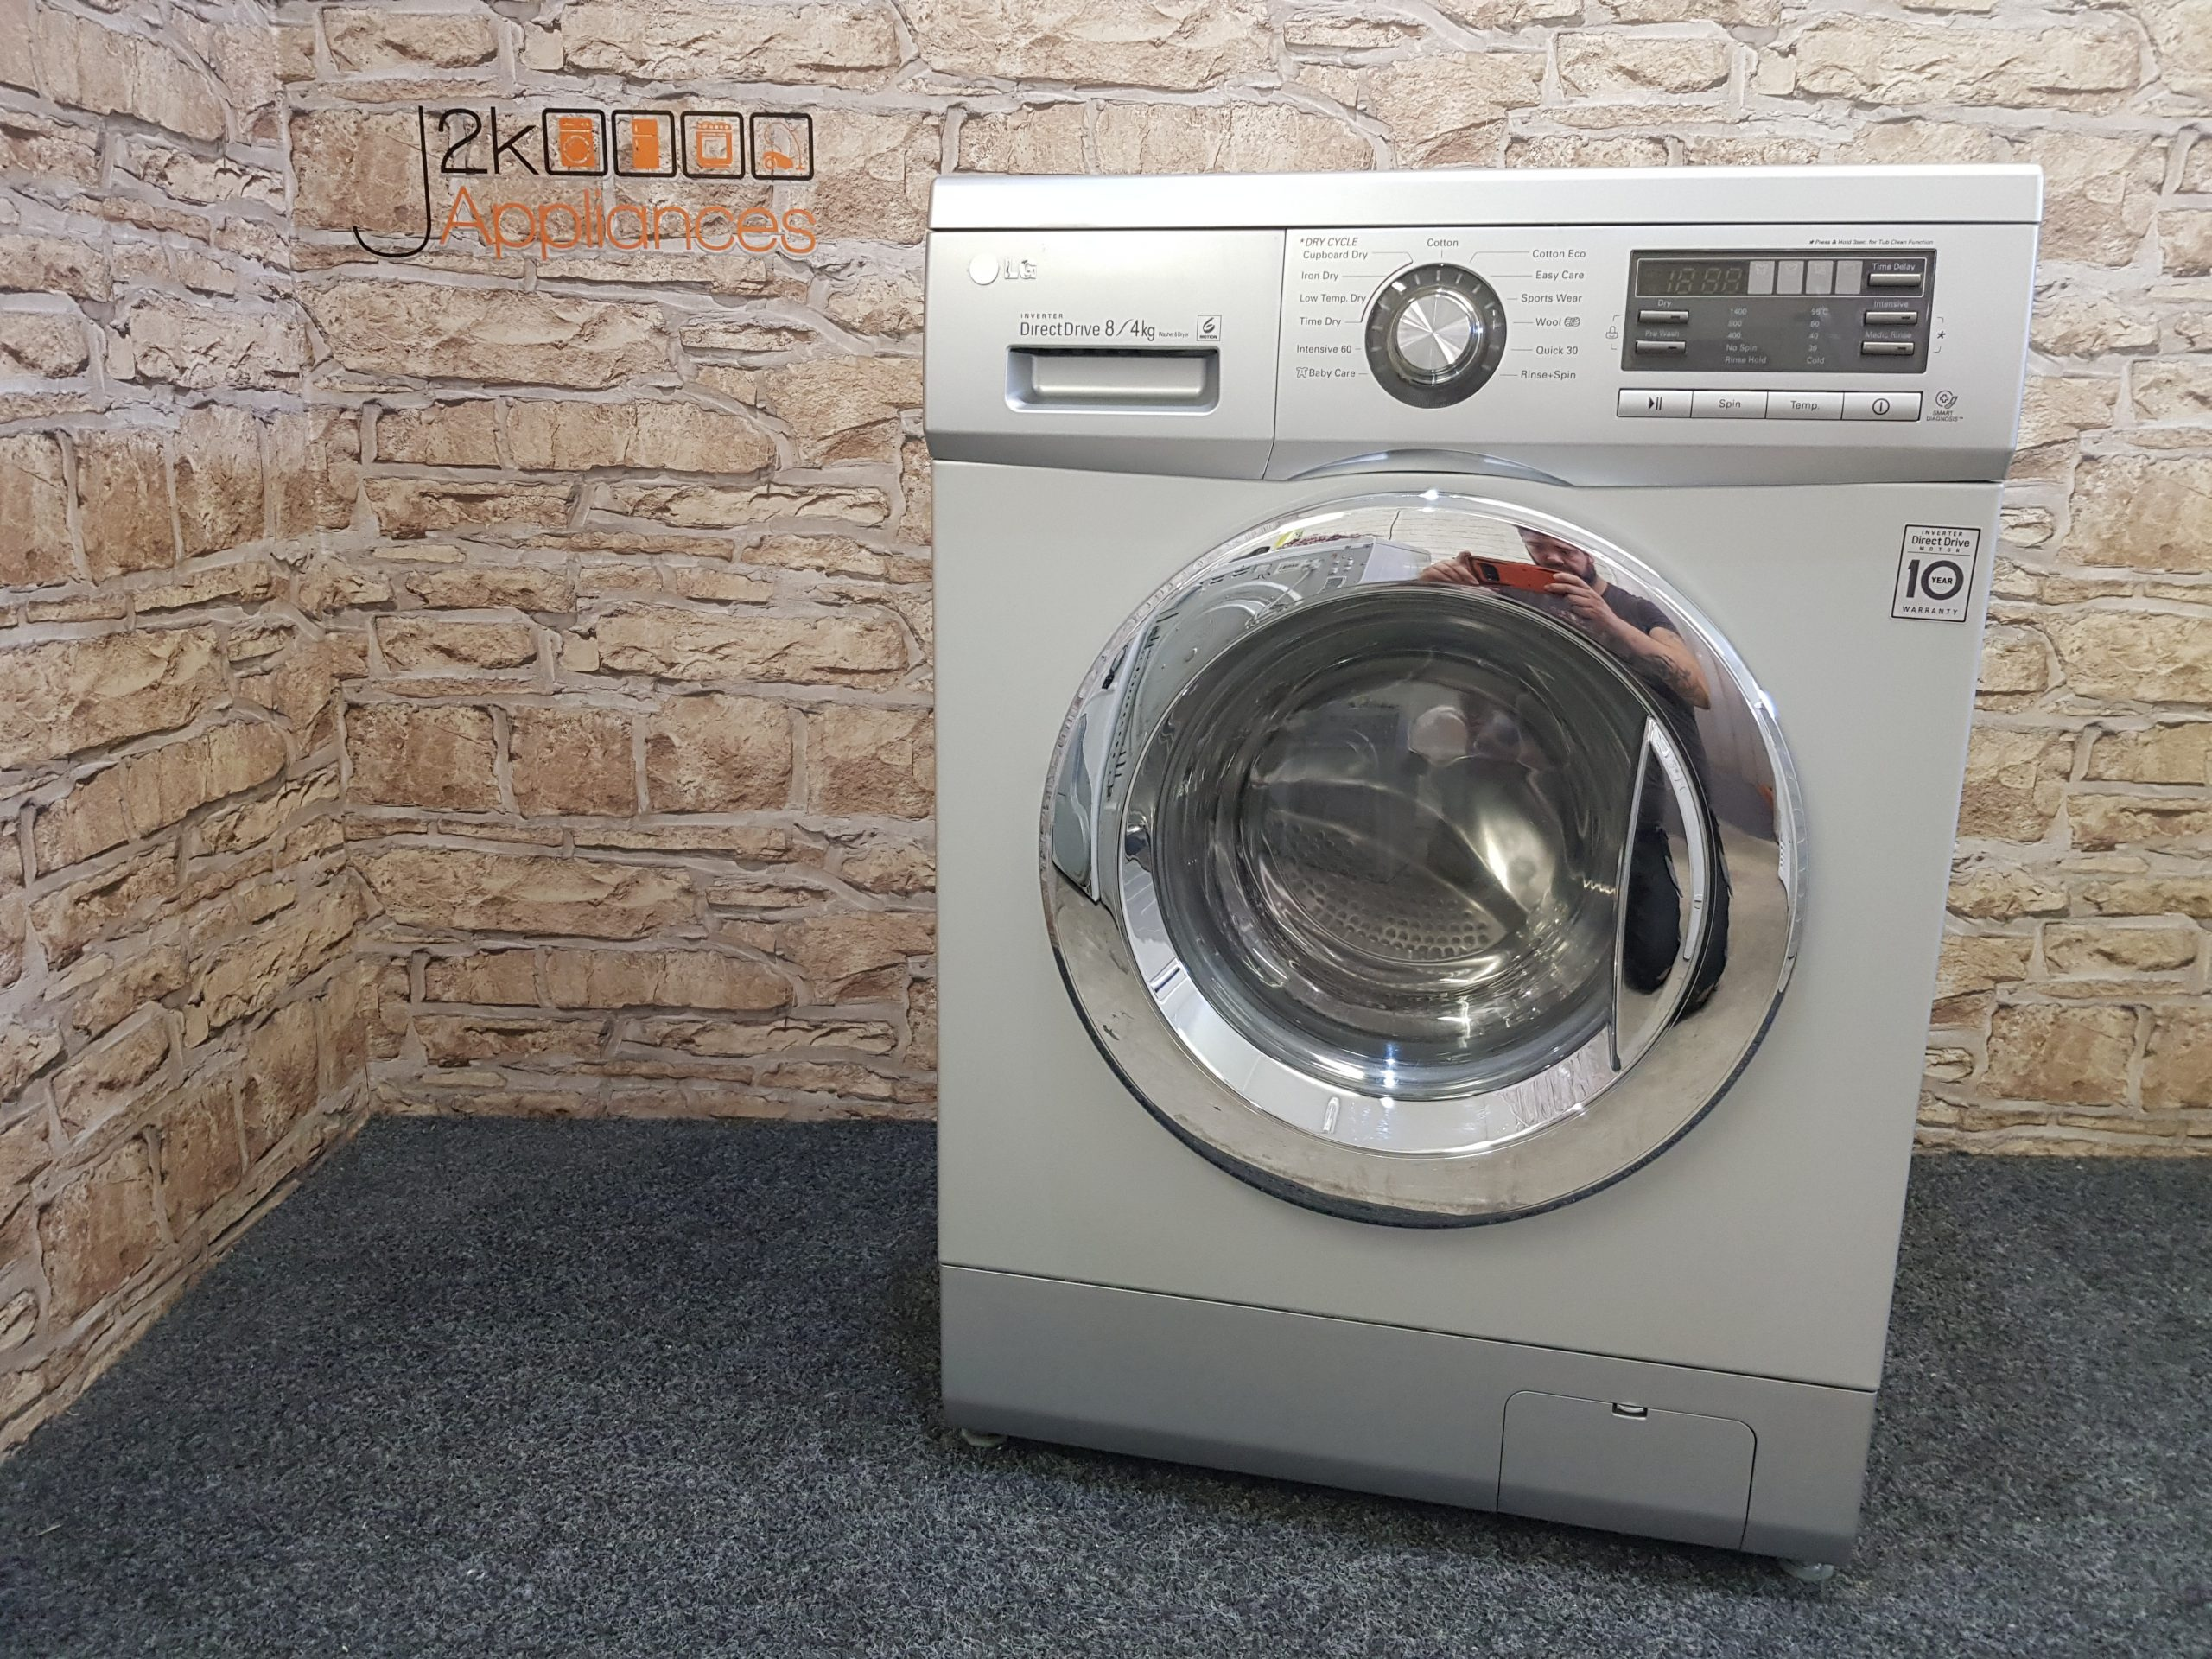 Lg Direct Drive 8 4kg 1400rpm F1496ad5 Washer Dryer J2k